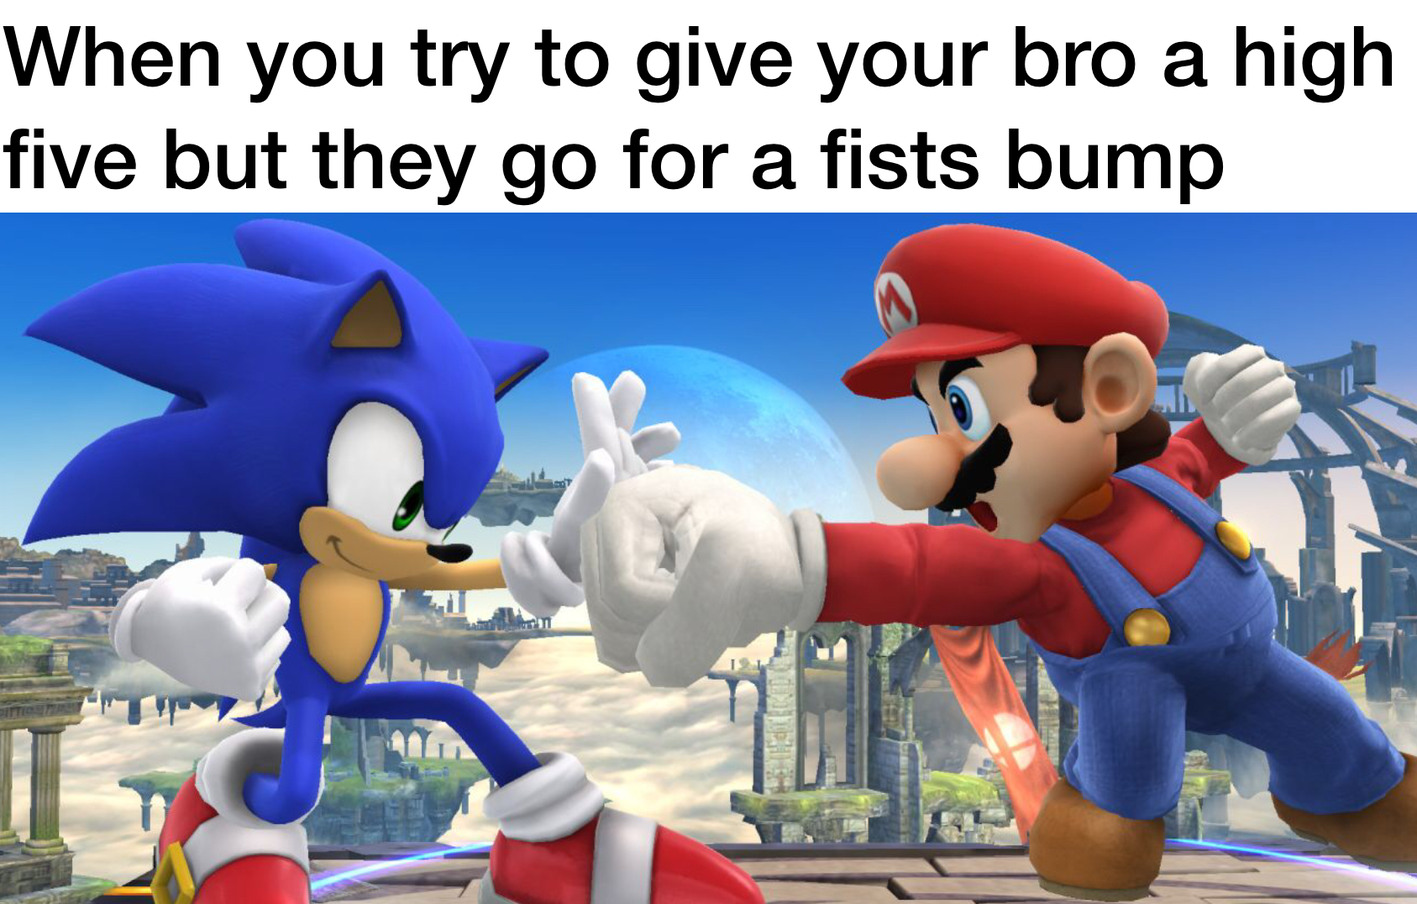 My first super smash bros screenshot - meme